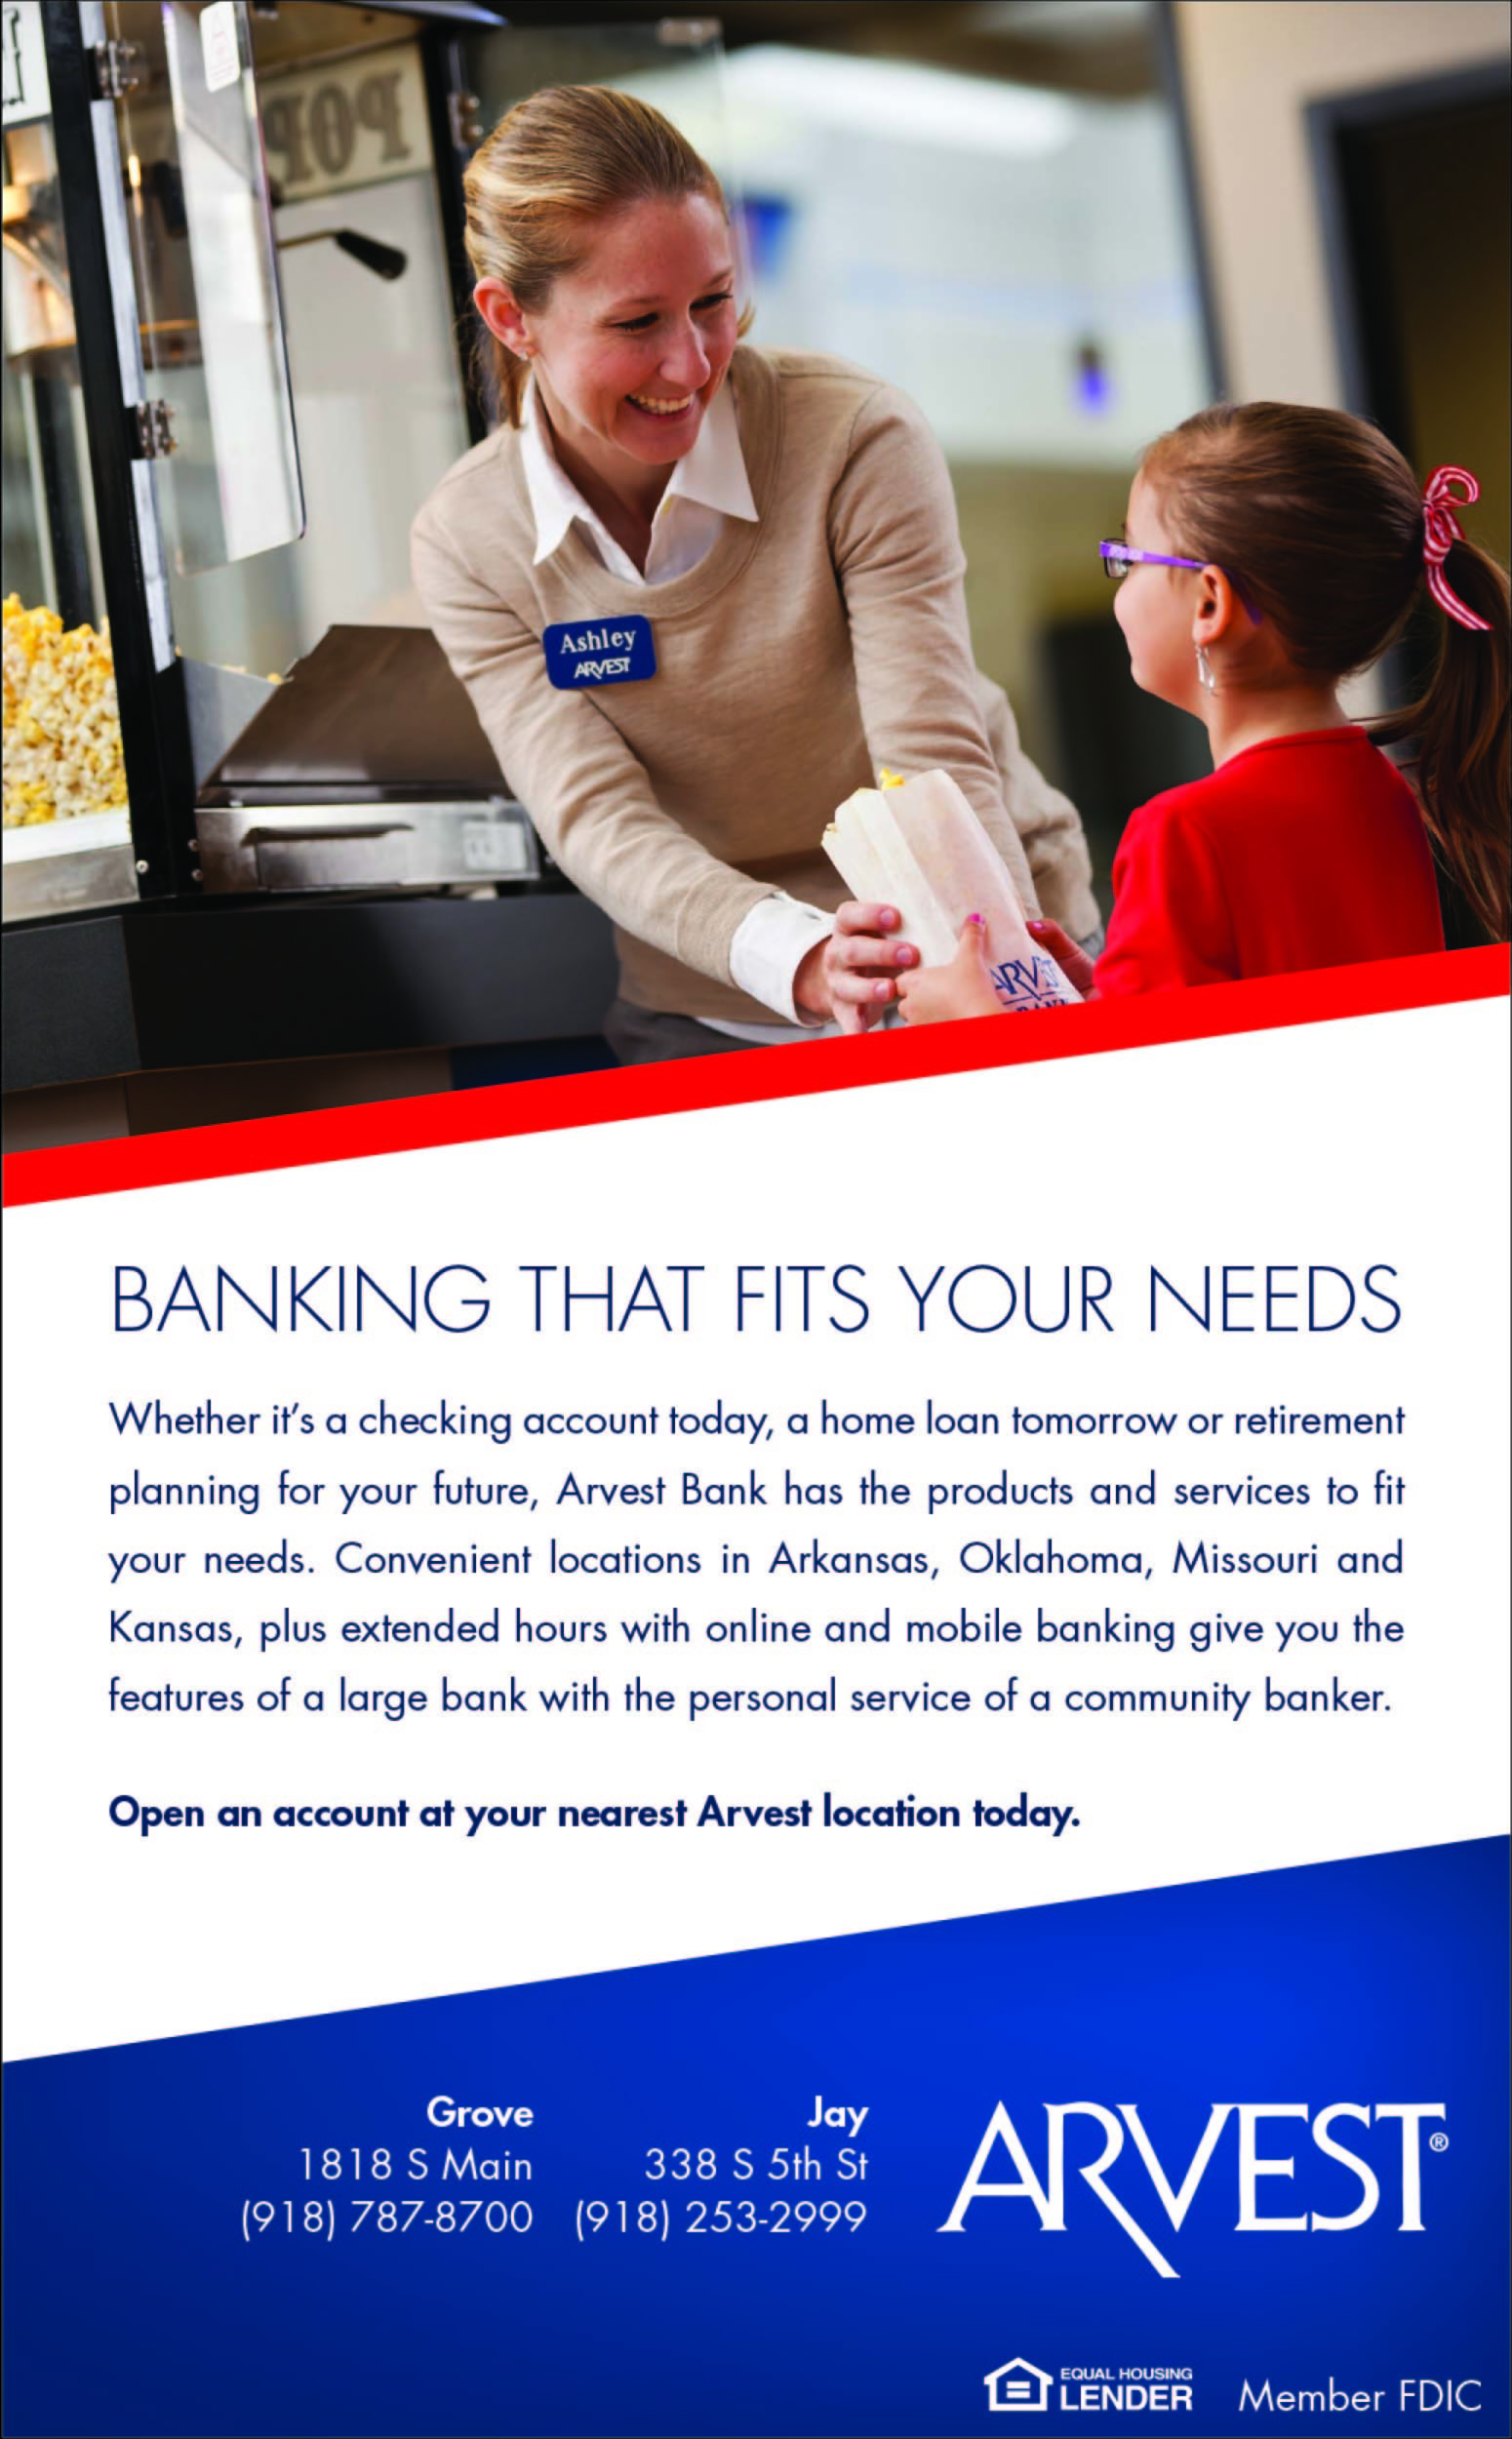 ARVEST Bank | Bixby Guide